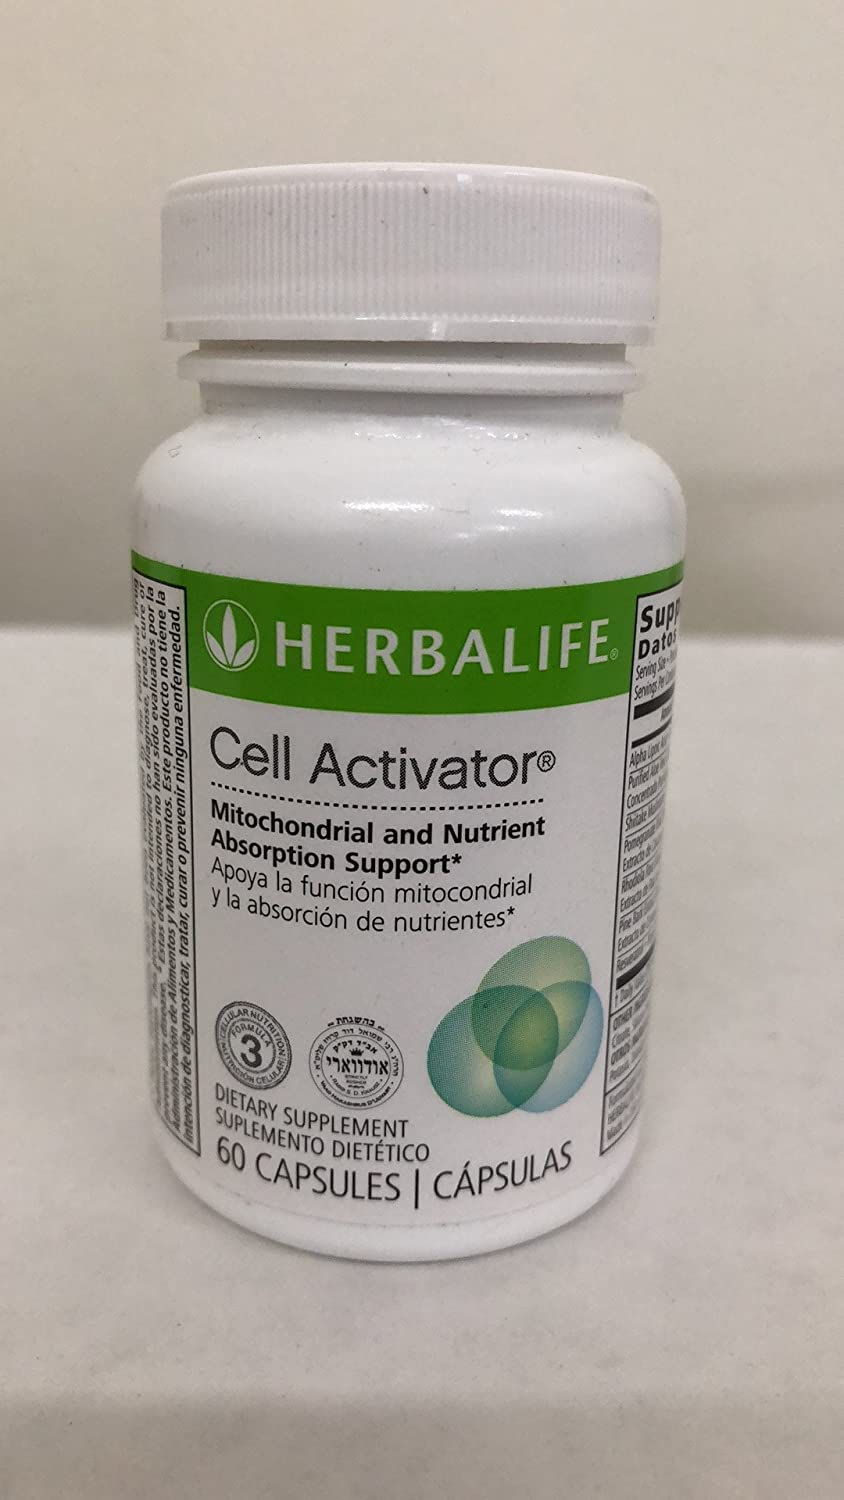 Amazon.com: Cell Activator from Herbalife 60 Capsules: Health & Personal Care